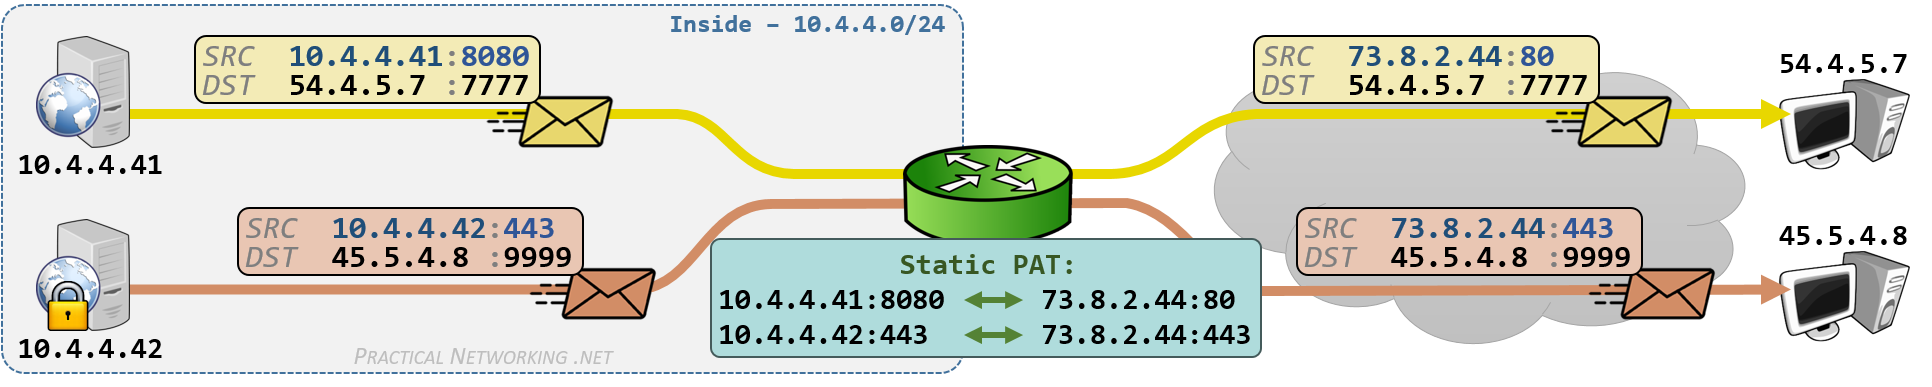 Cisco NAT Configuration - Static PAT on IOS Router Example - Outbound